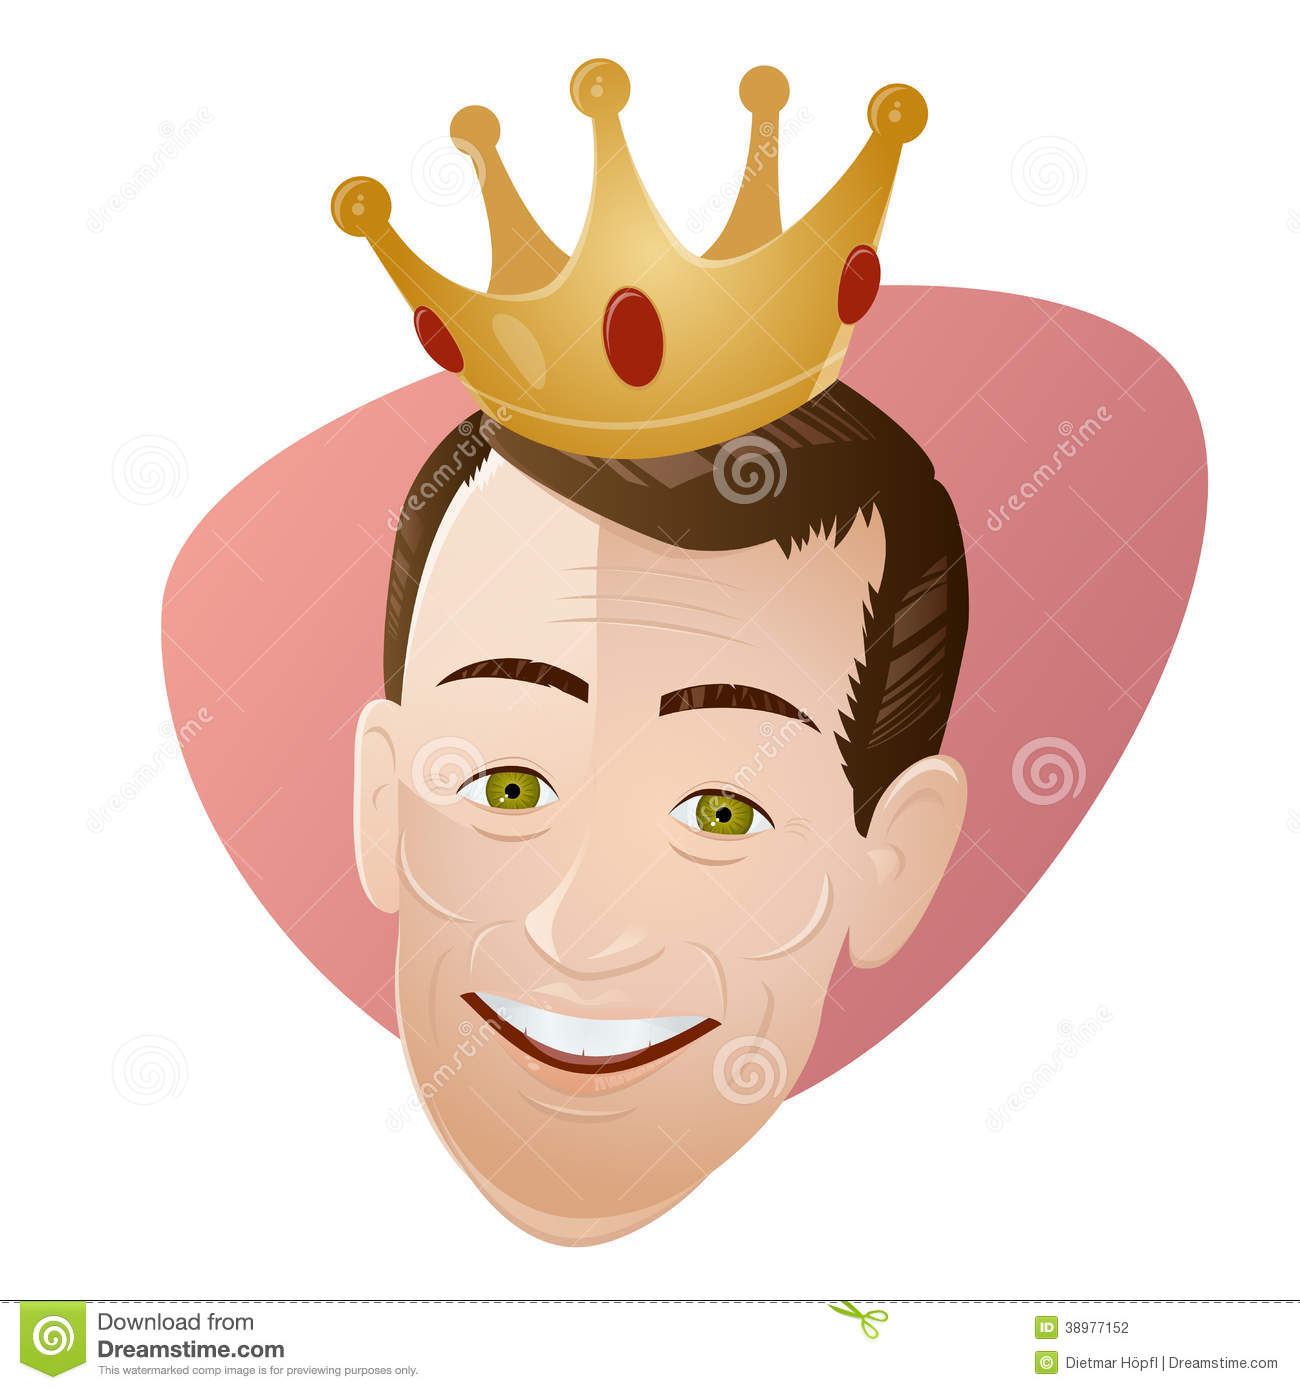 Retro Cartoon Man With A Crown Stock Vector Illustration Of Rich Amusing 38977152 Alibaba.com offers 595 cartoon crown designs products. dreamstime com